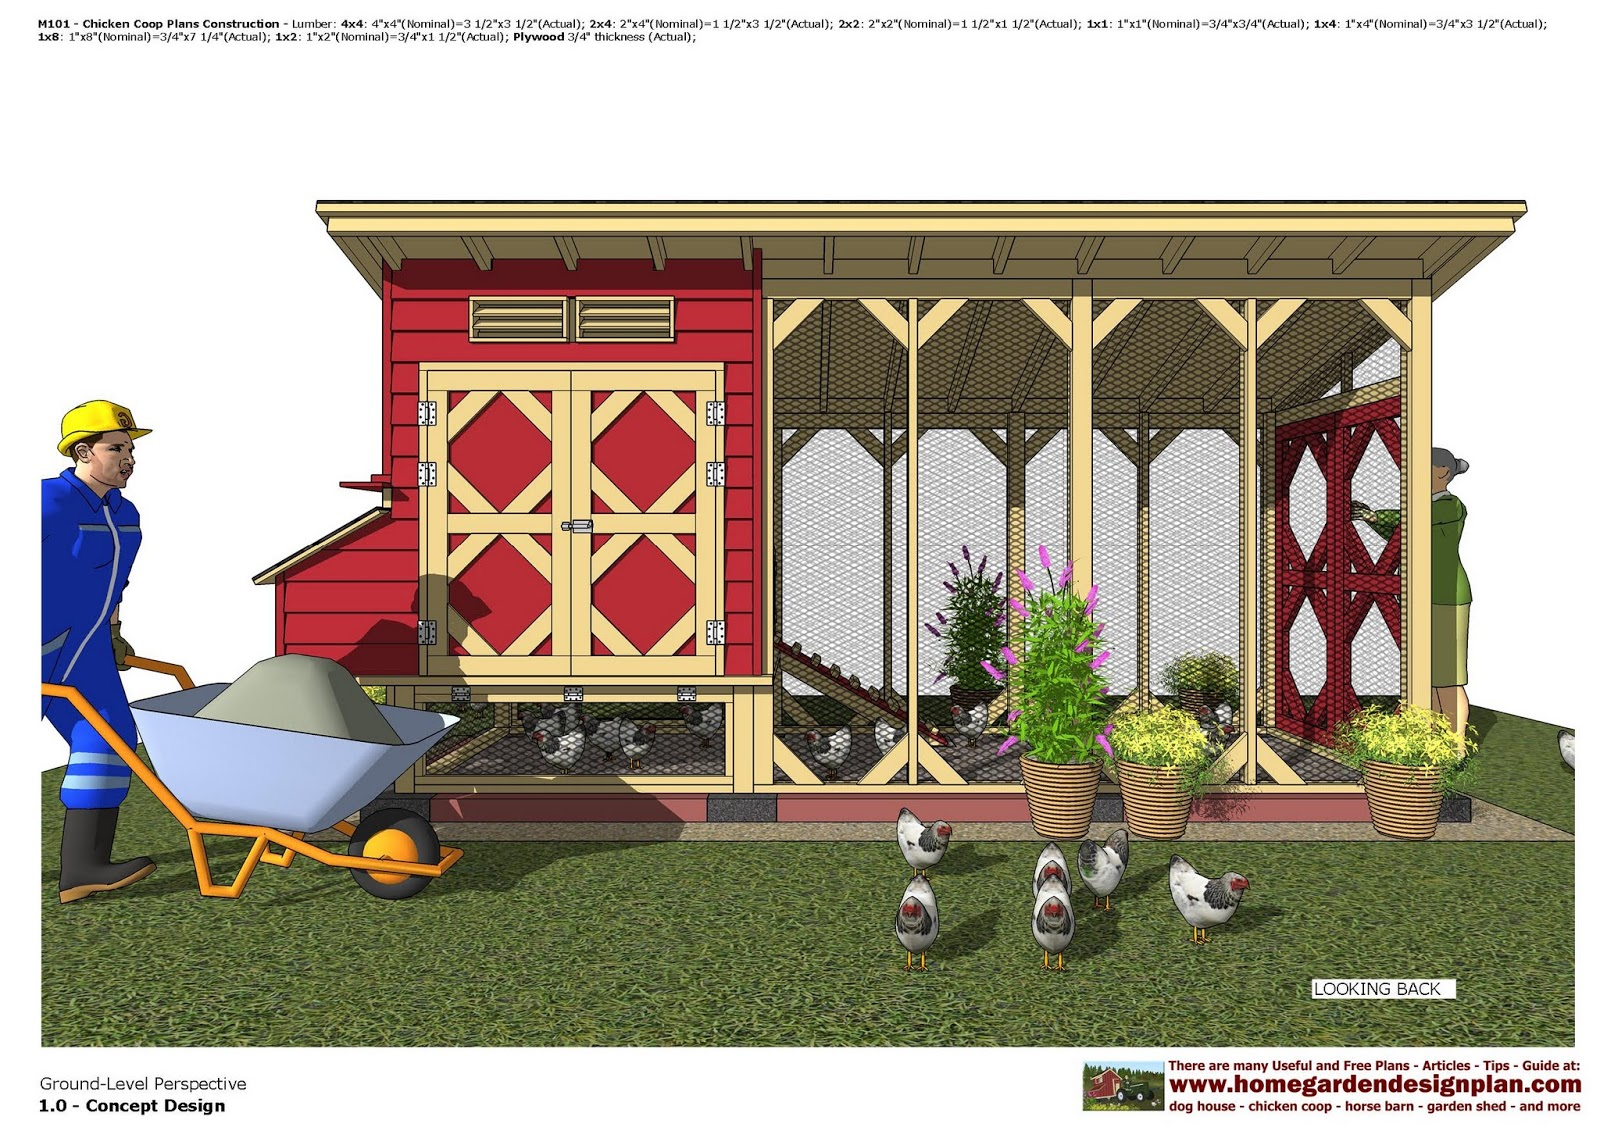 M101 - Chicken Coop Plans Construction - Chicken Coop Design - How To Build A Chicken Coop_10